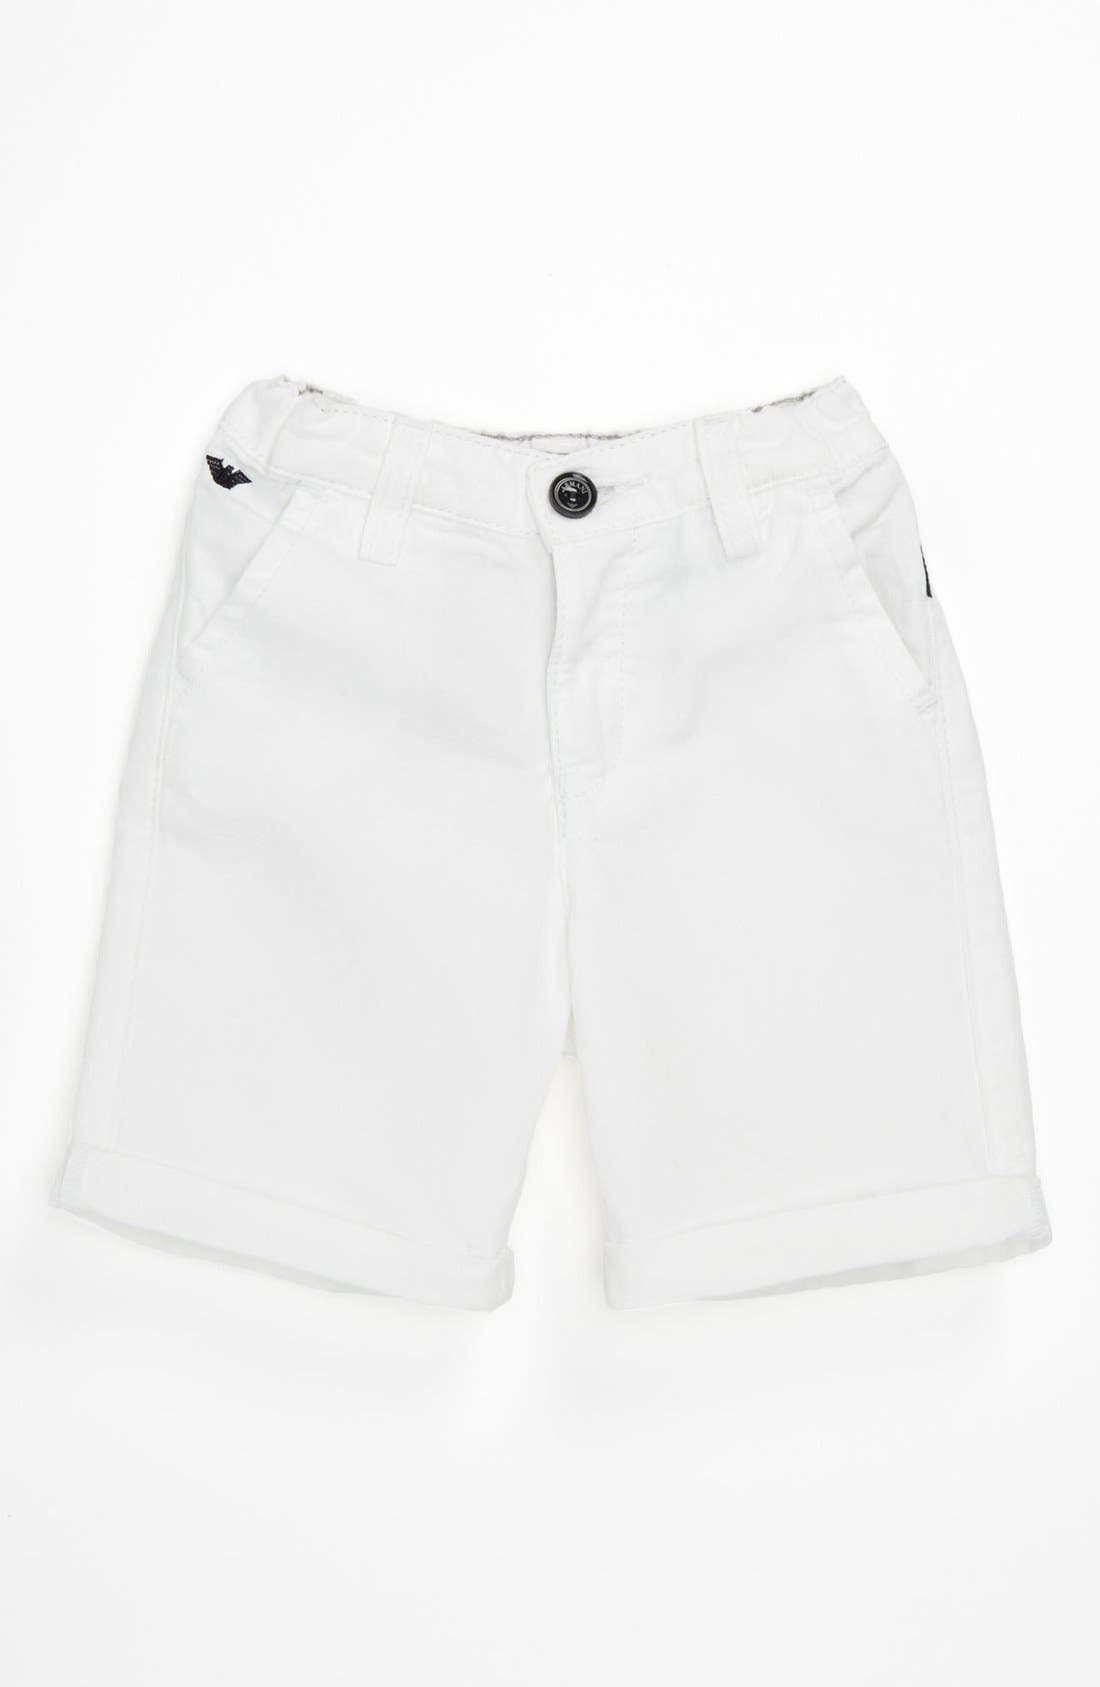 Main Image - Armani Junior Shorts (Baby)